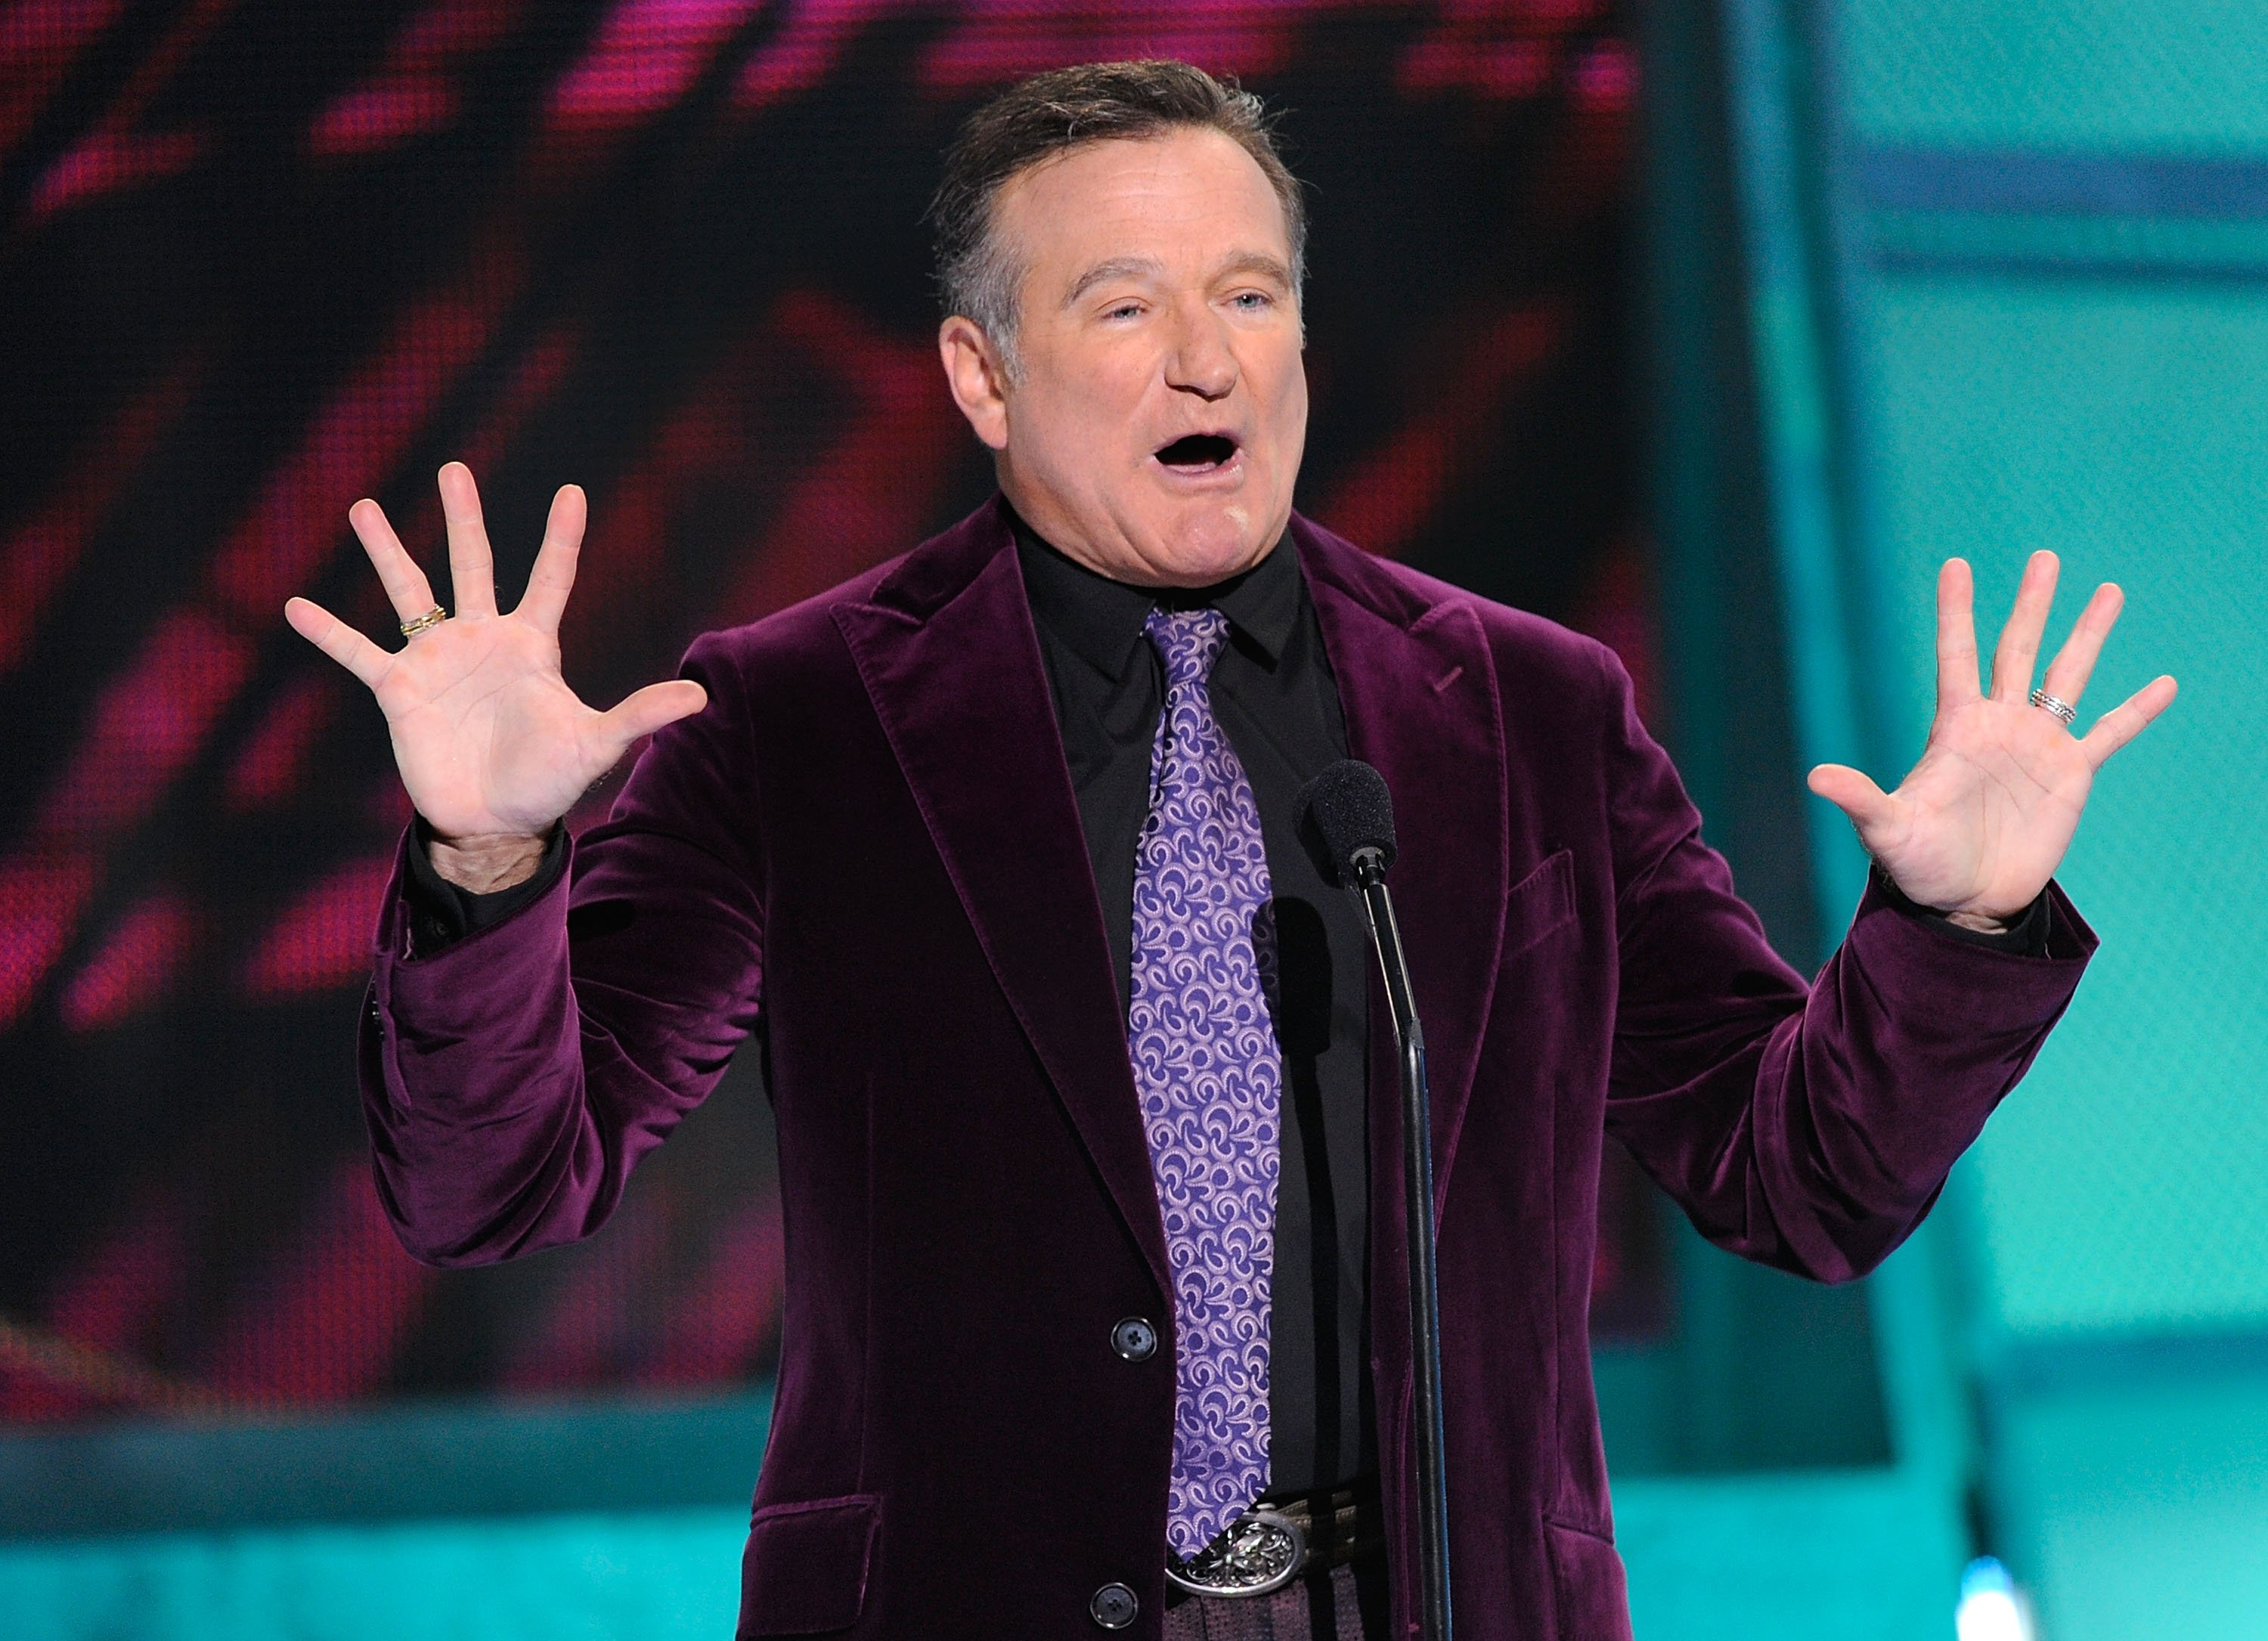 Inside The Final Days Of Robin Williams